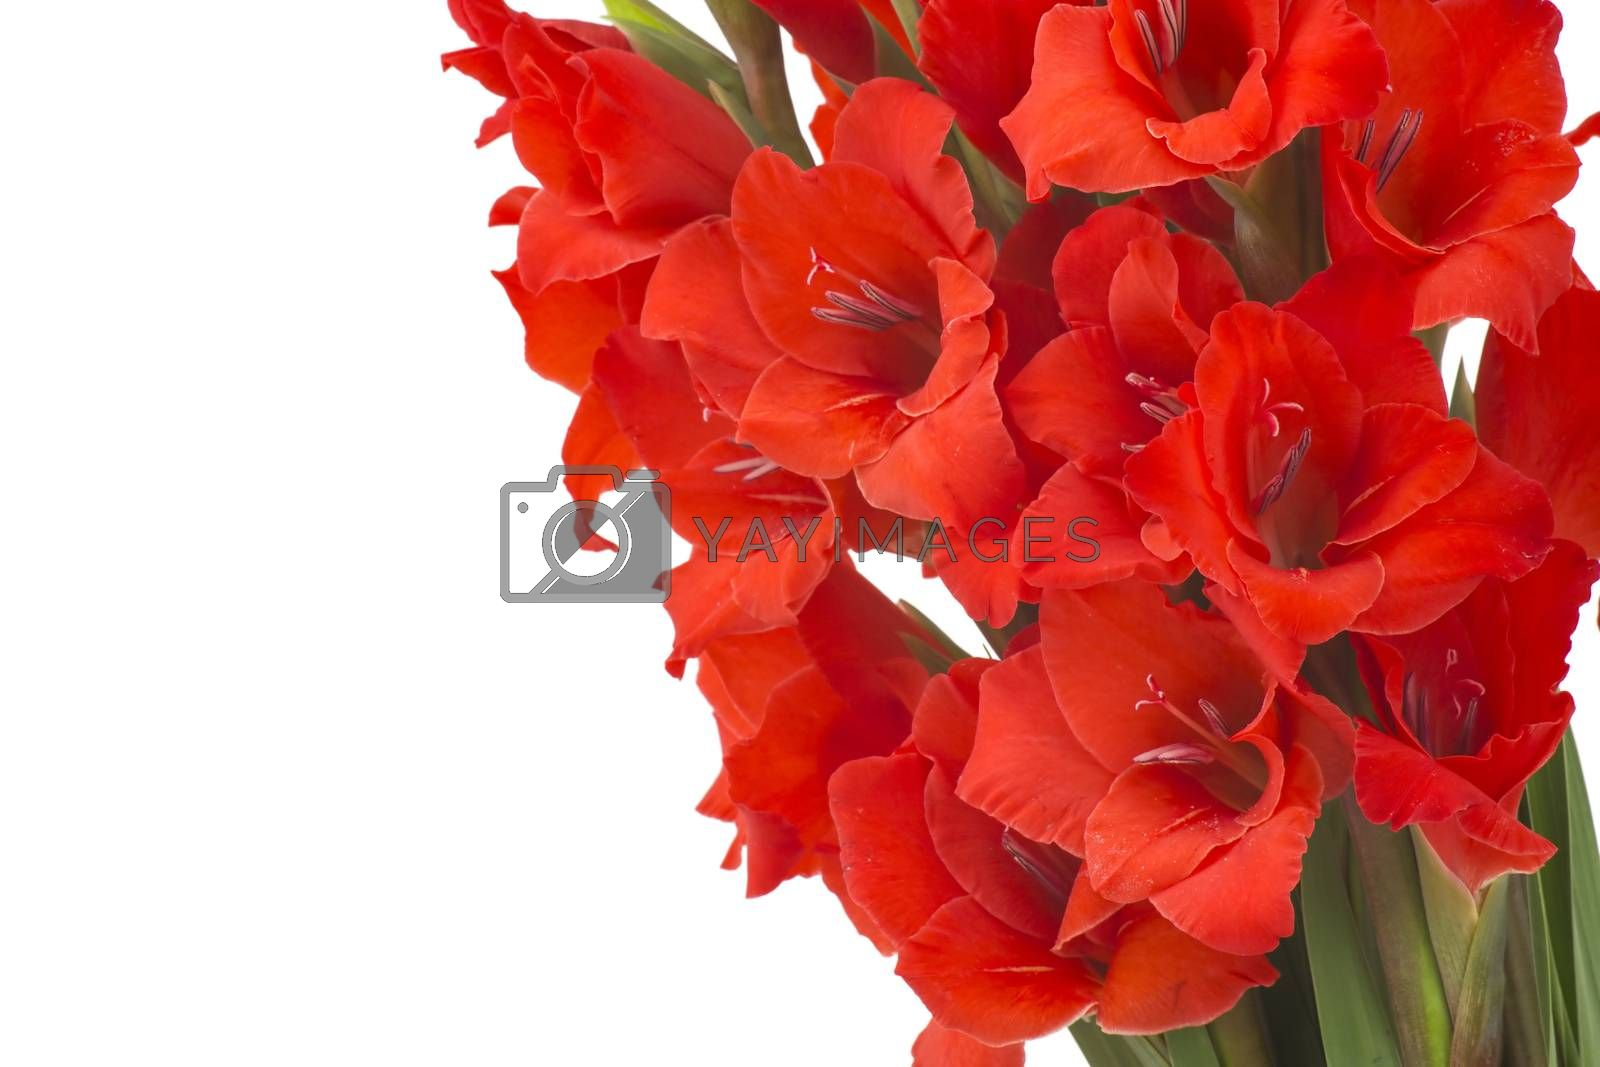 red gladiolus flowers on white background